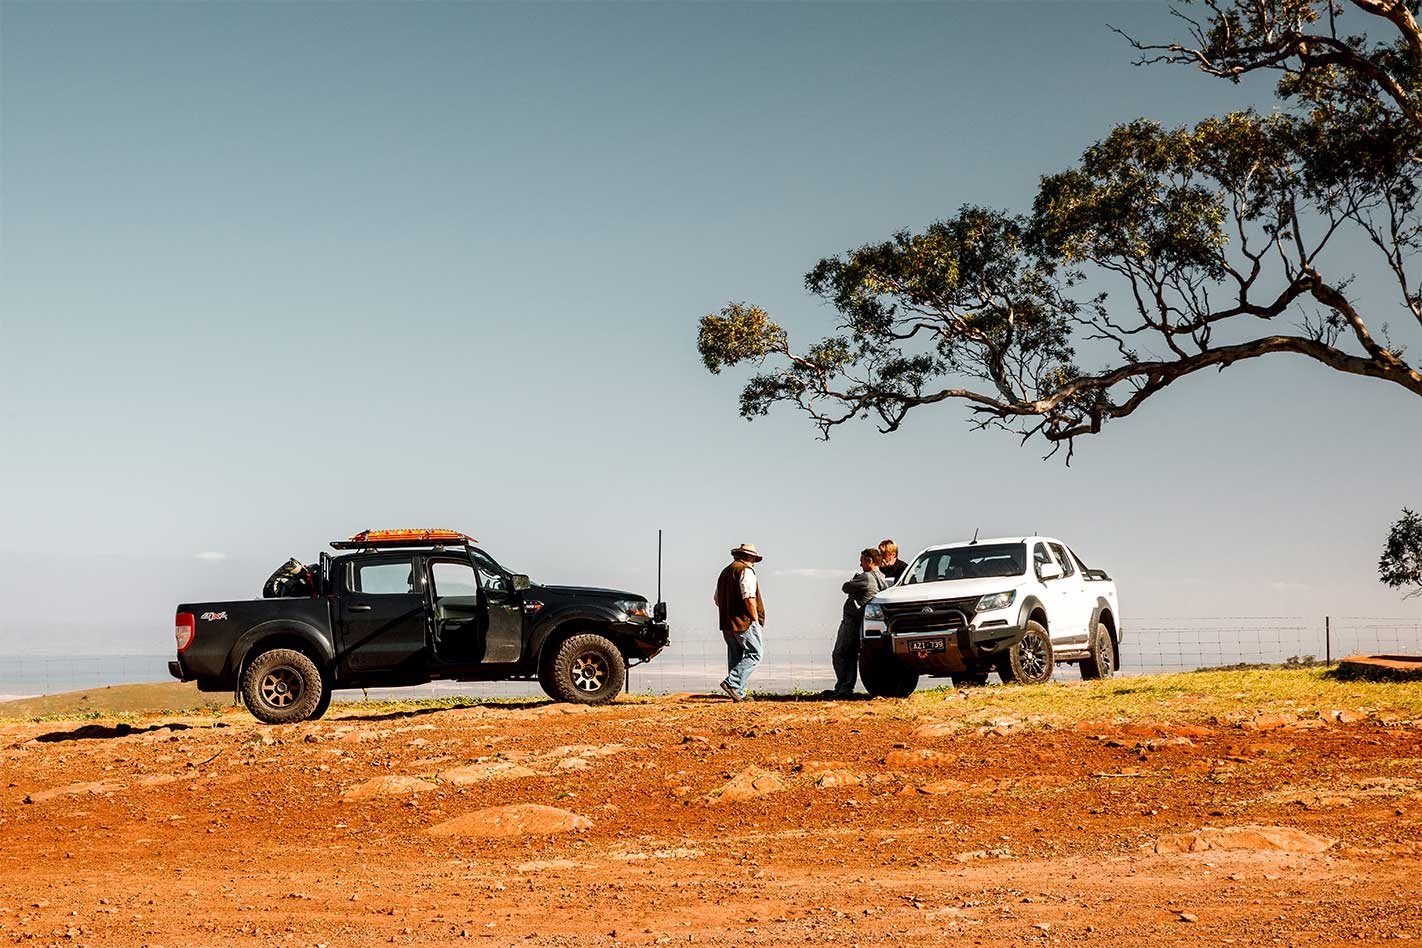 4X4 Adventure Series' Flinders Ranges trip: Episode 1